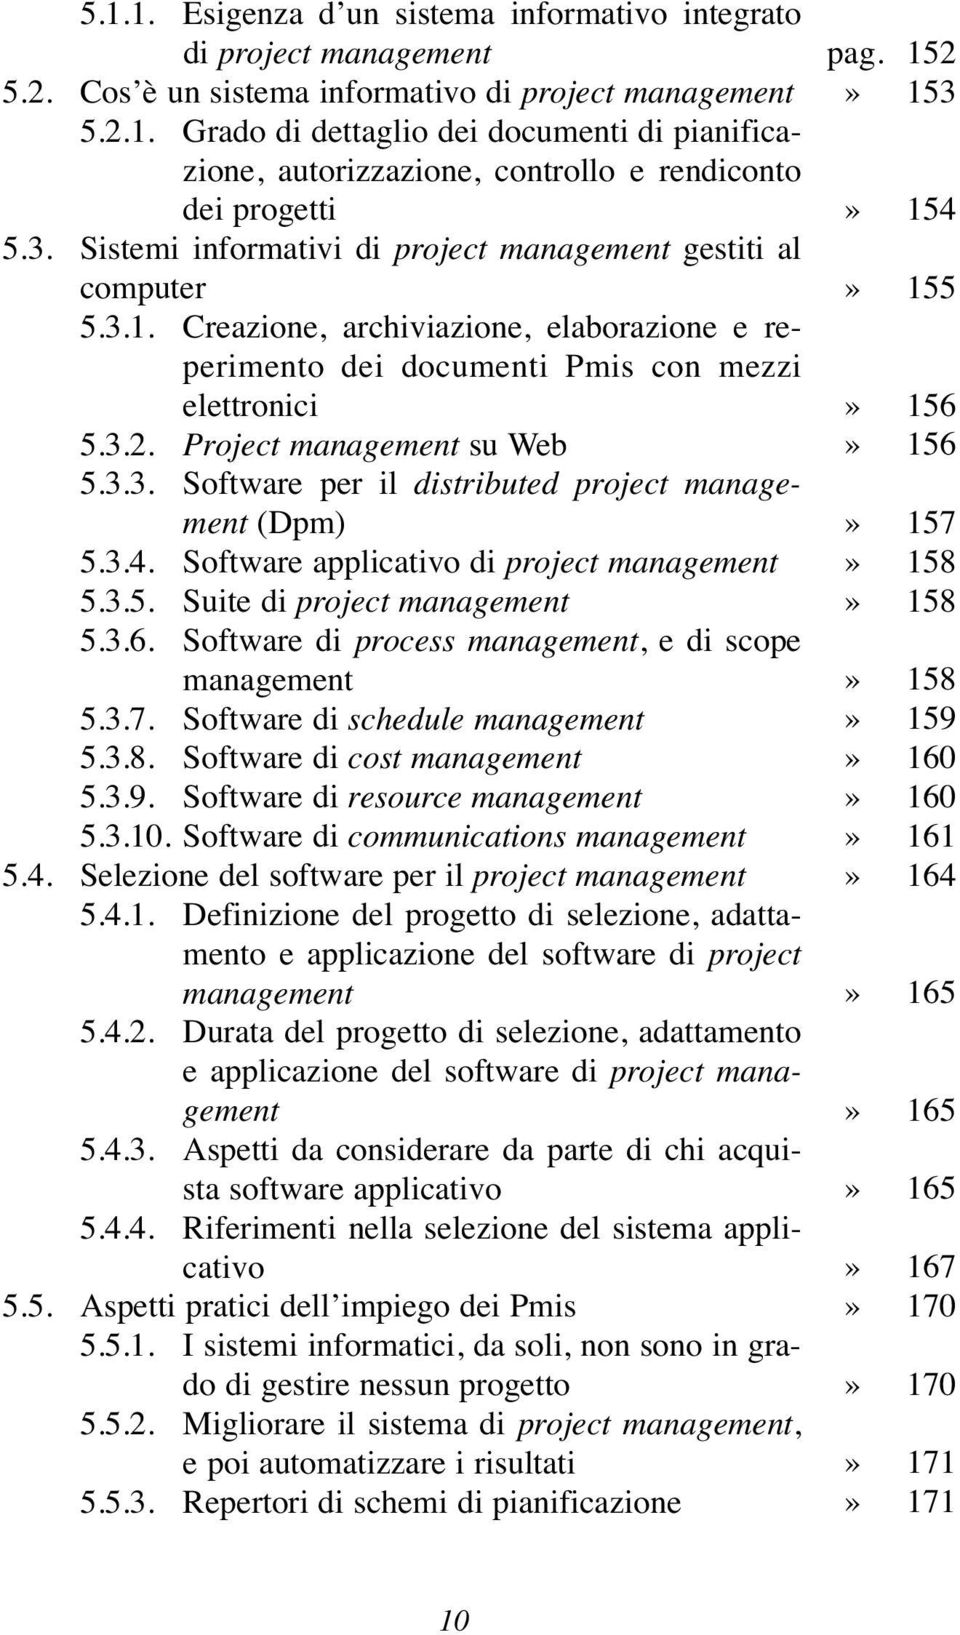 3.4. Software applicativo di project 5.3.5. Suite di project 5.3.6. Software di process, e di scope 5.3.7. Software di schedule 5.3.8. Software di cost 5.3.9. Software di resource 5.3.10.